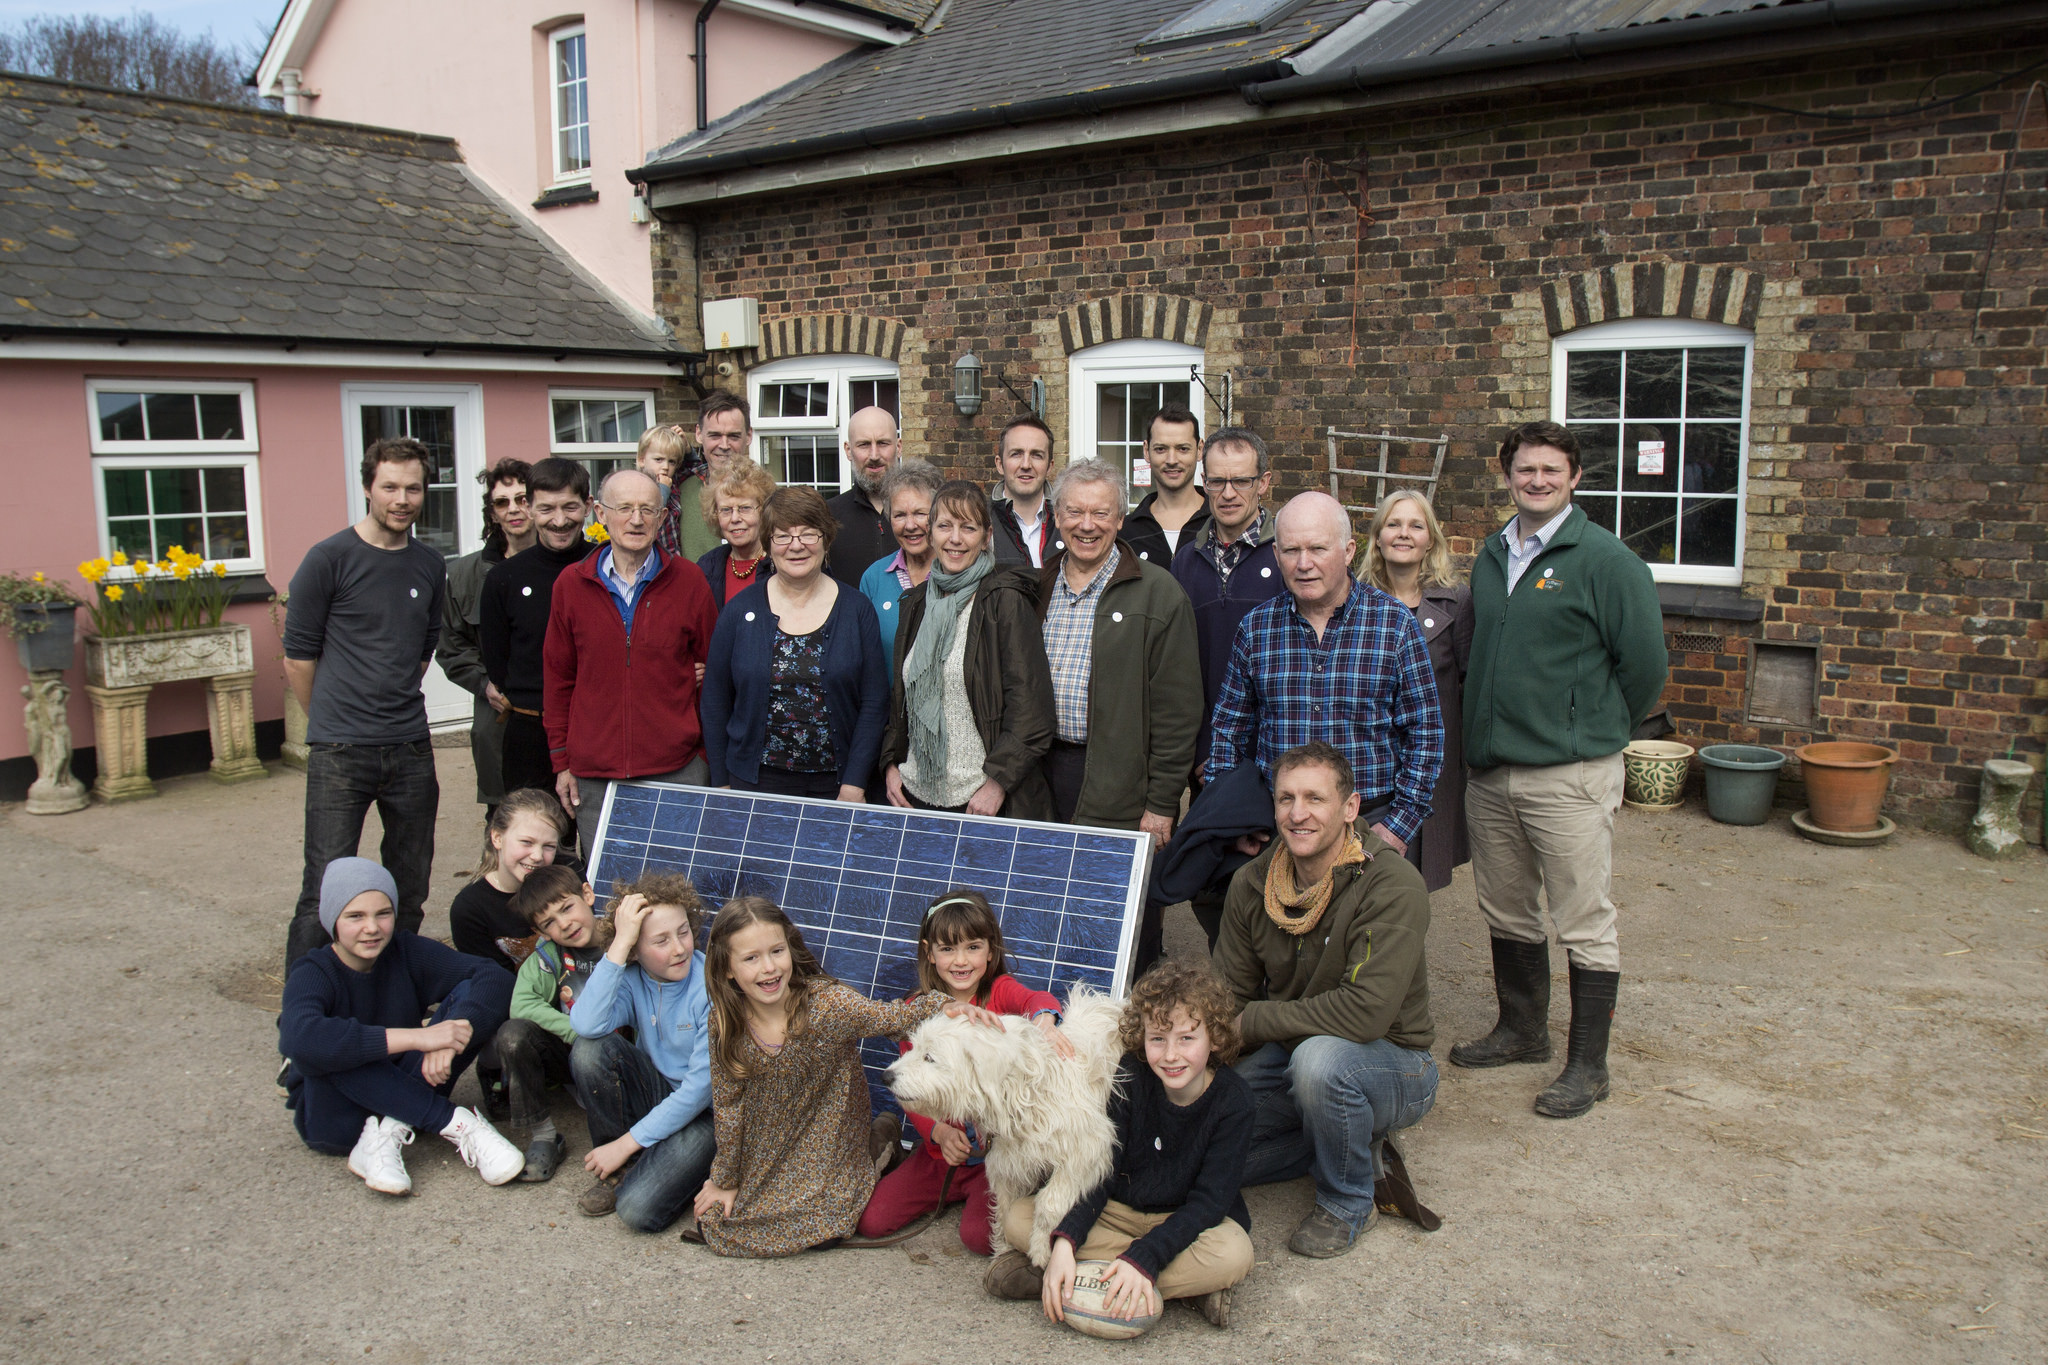 The RepowerBalcombe team